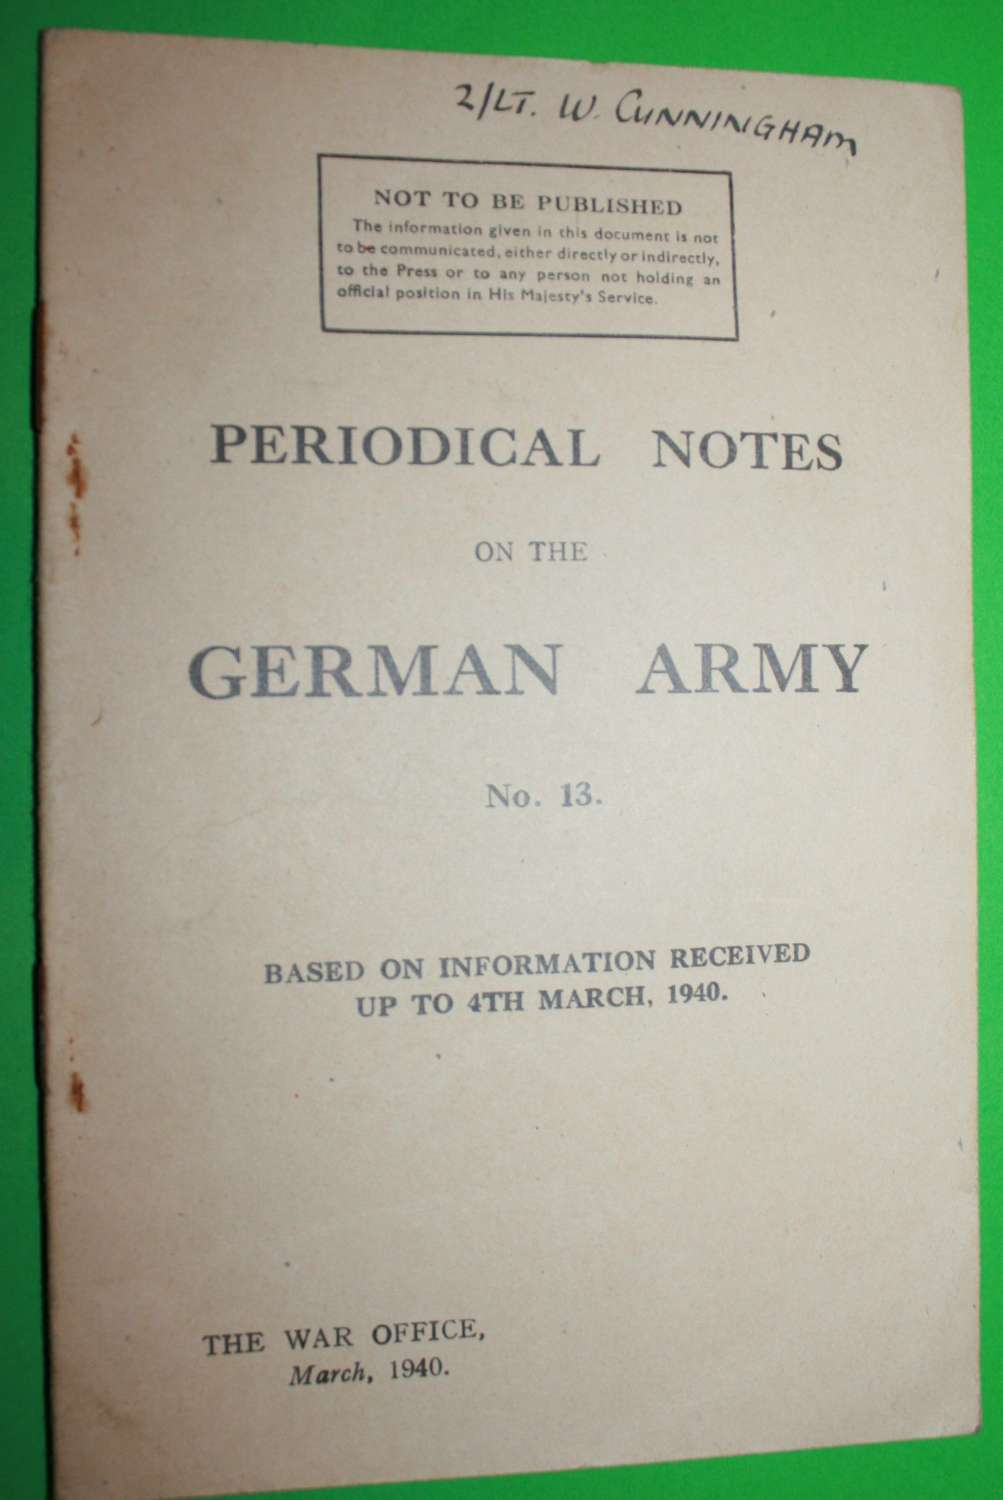 PERIODICAL NOTES ON THE GERMAN ARMY MARCH 1940